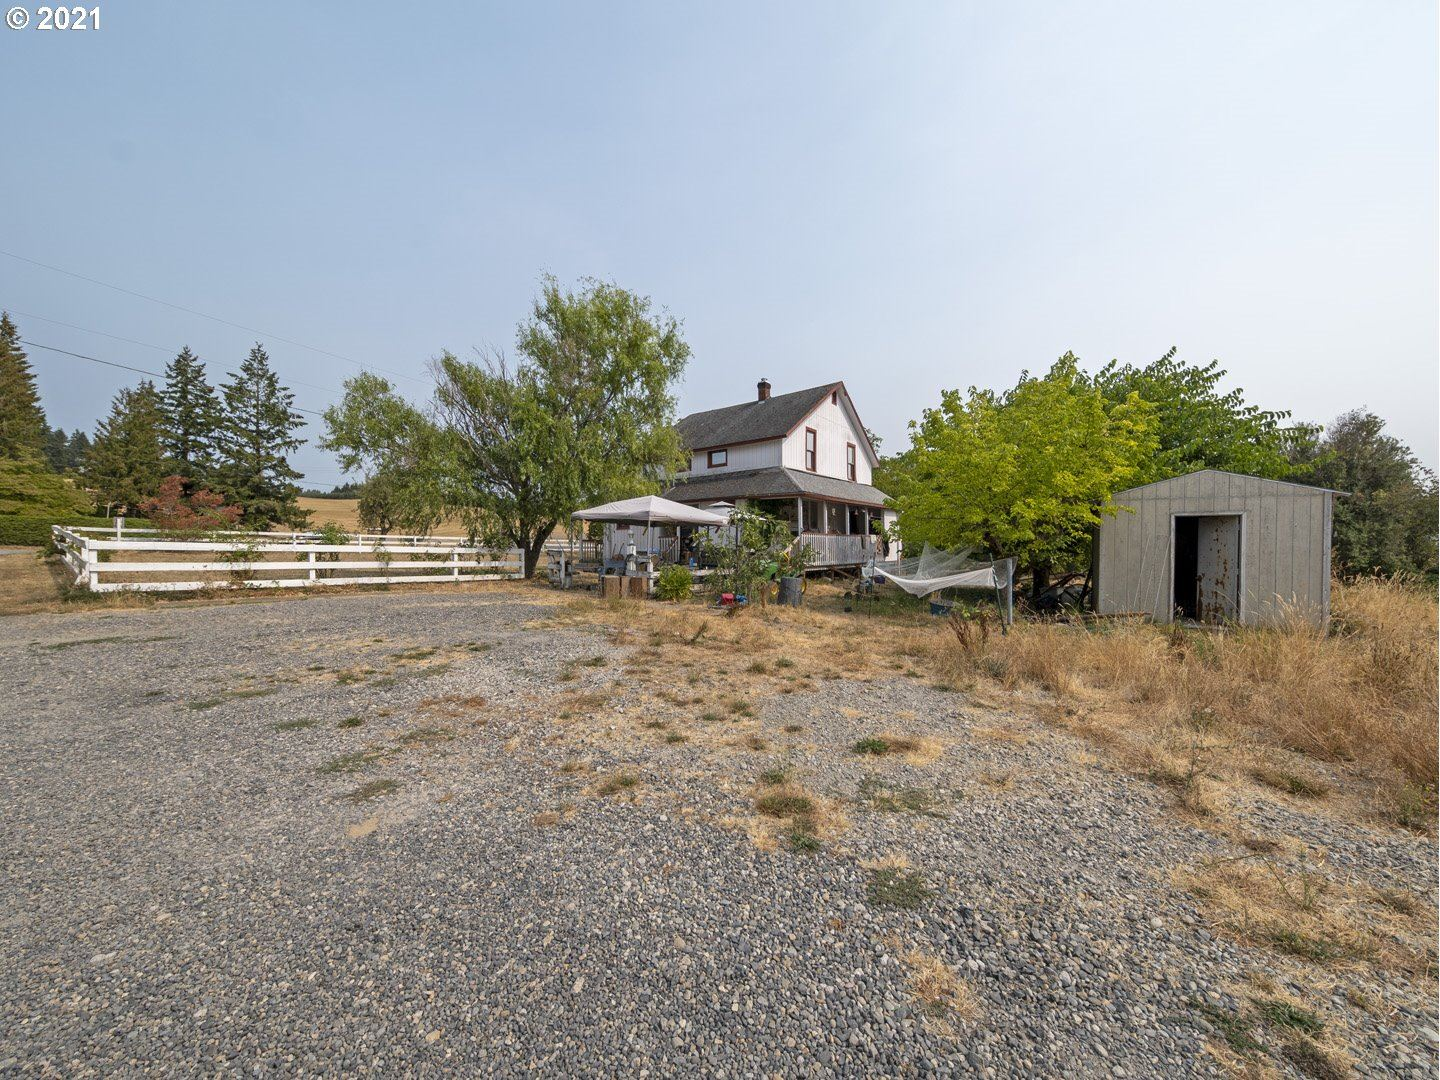 Photo of 39600 NW SUNSET HWY, Banks, OR 97106 (MLS # 21675901)